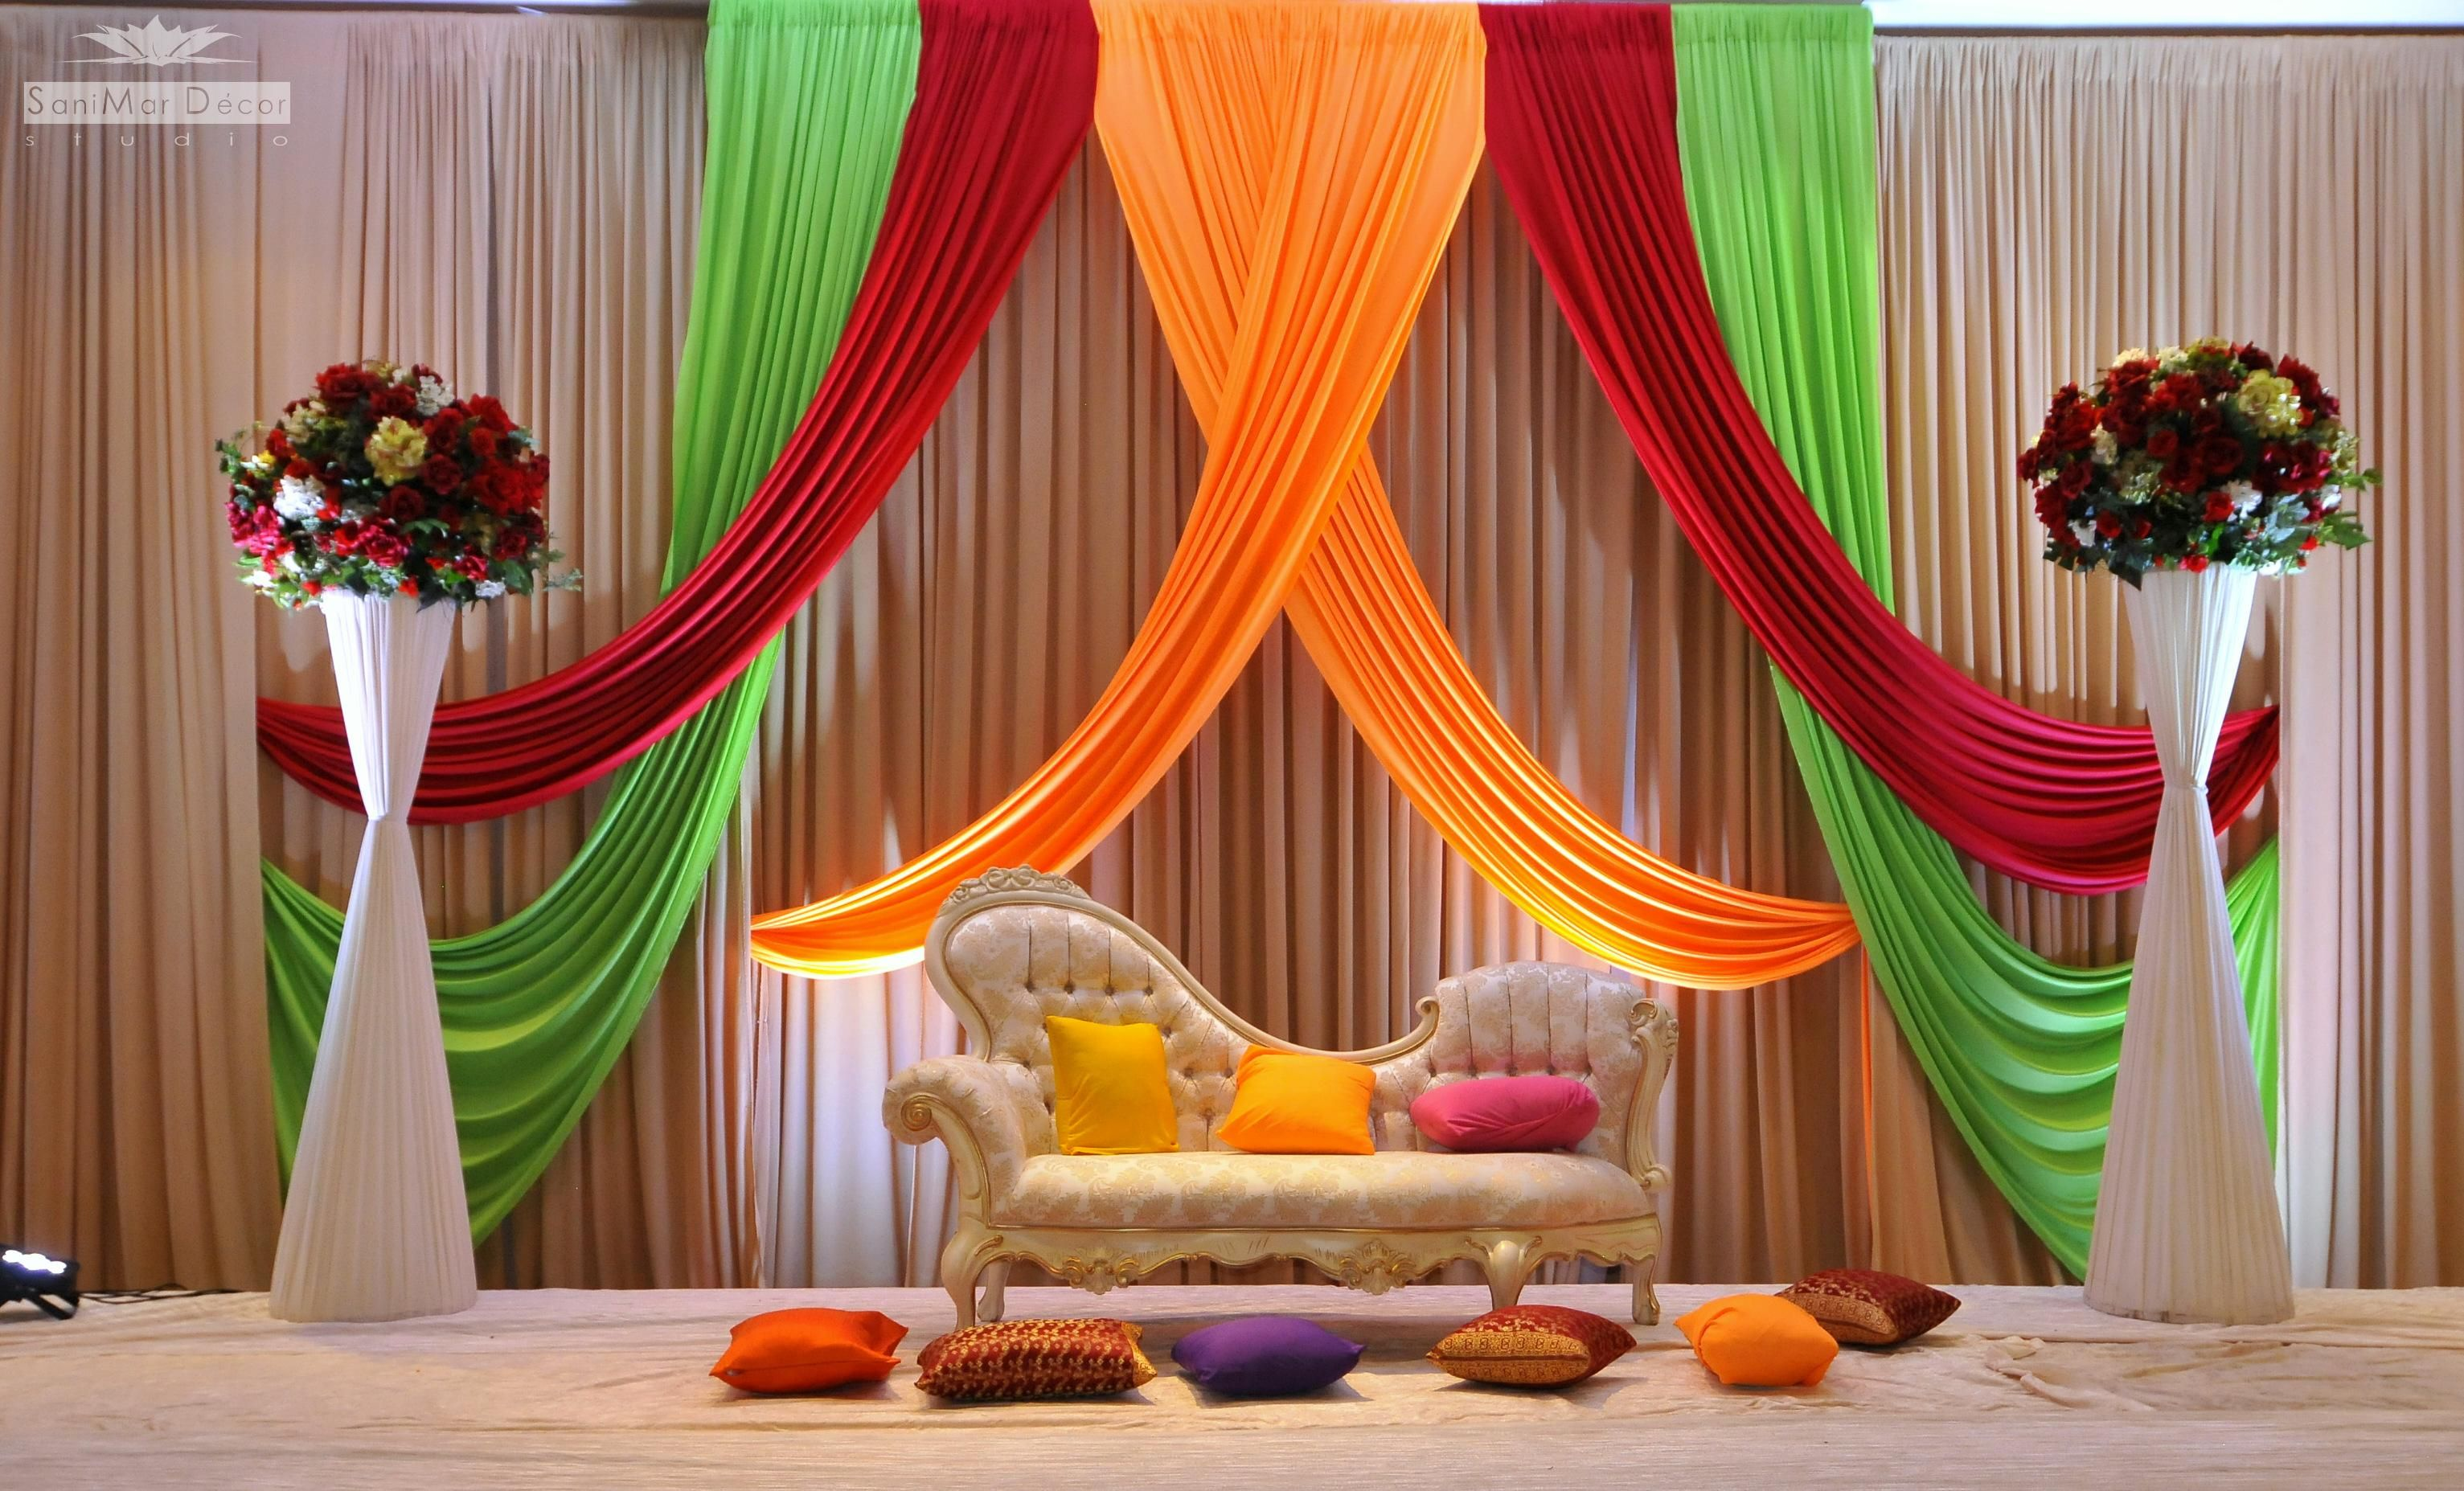 Wedding stage decoration wedding decorations natural for Home decor ideas for indian wedding